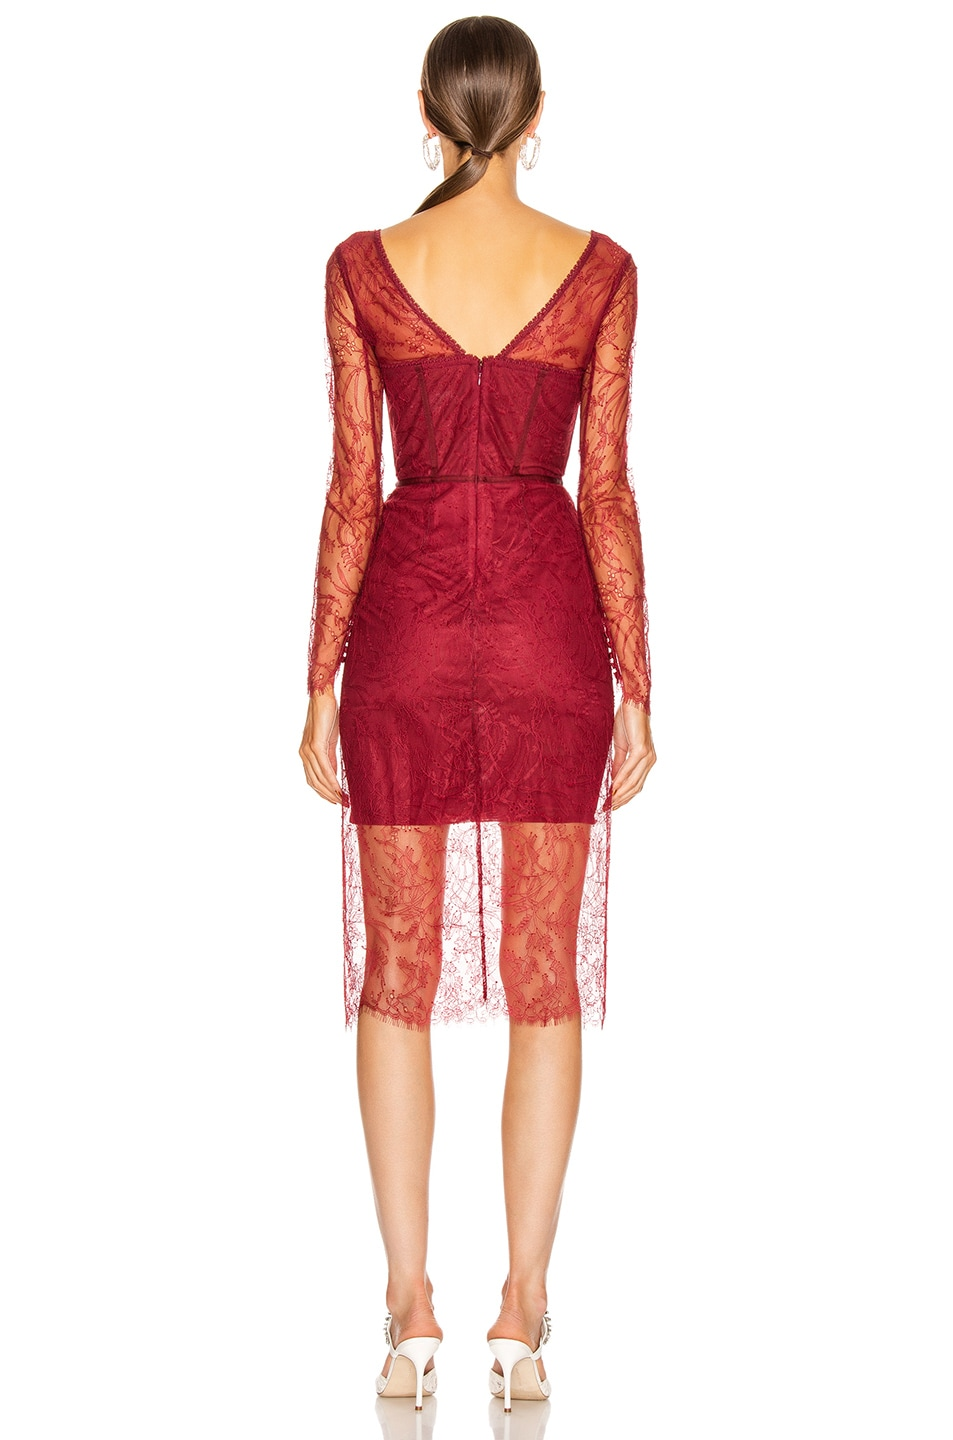 Image 3 of JONATHAN SIMKHAI Lace Bustier Bodysuit Dress in Oxblood